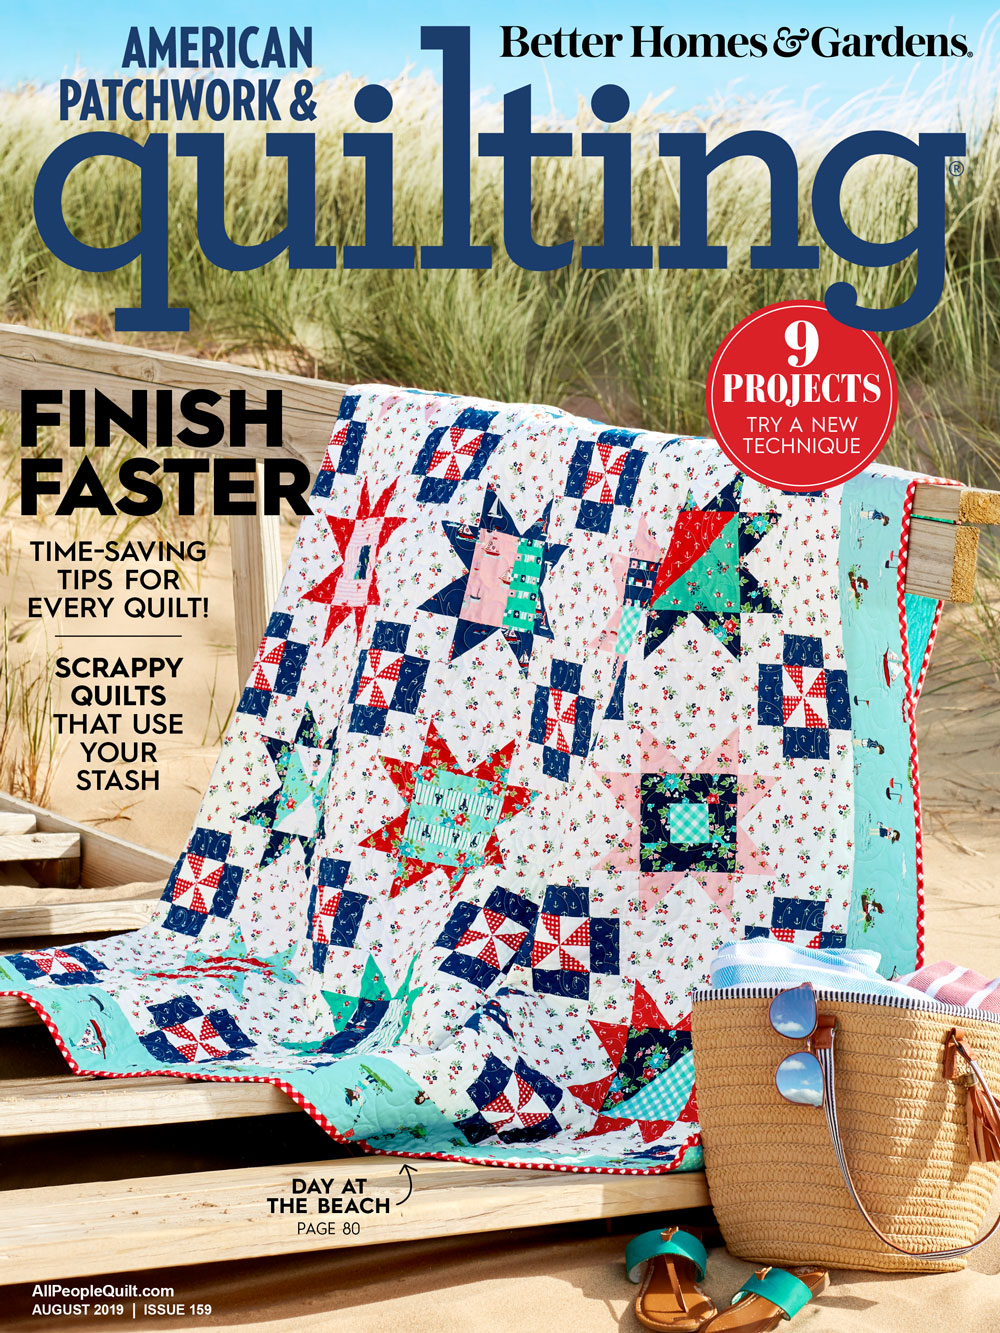 American Patchwork & Quilting August 2019